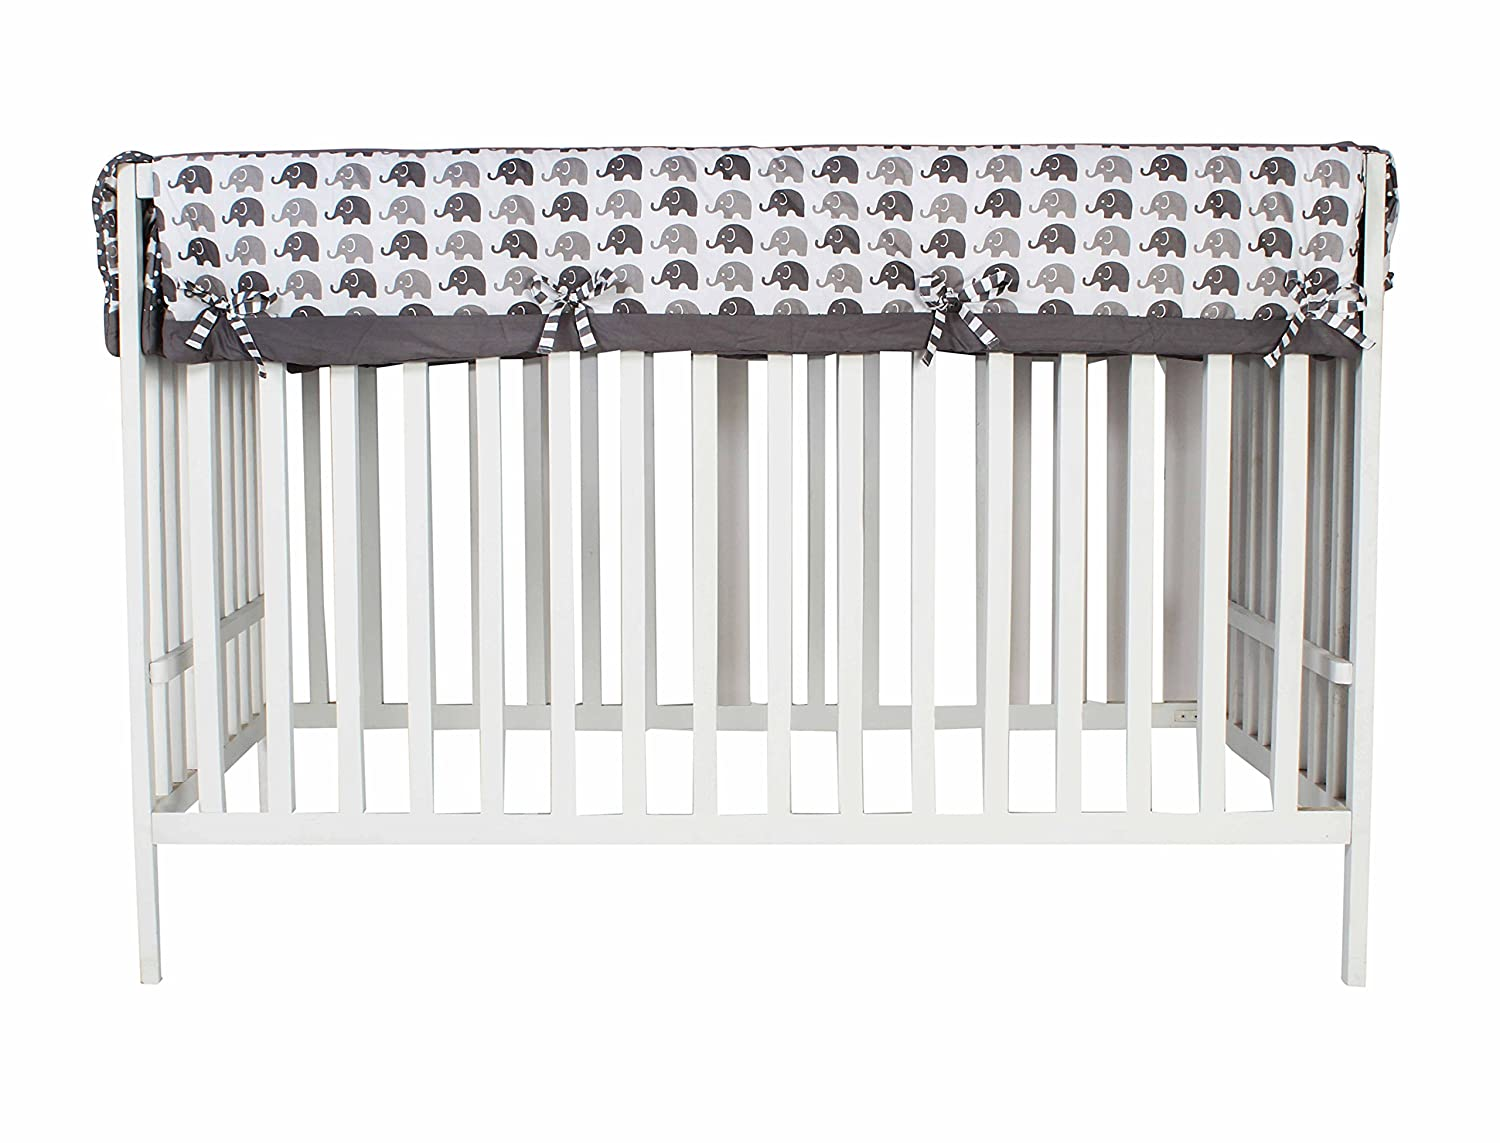 Bacati Elephants Unisex Long Crib Rail Guard Cover Made with 100 Cotton Percale Fabrics and Polyester Batting for US Standard Cribs, Grey Inc. EWGLCR